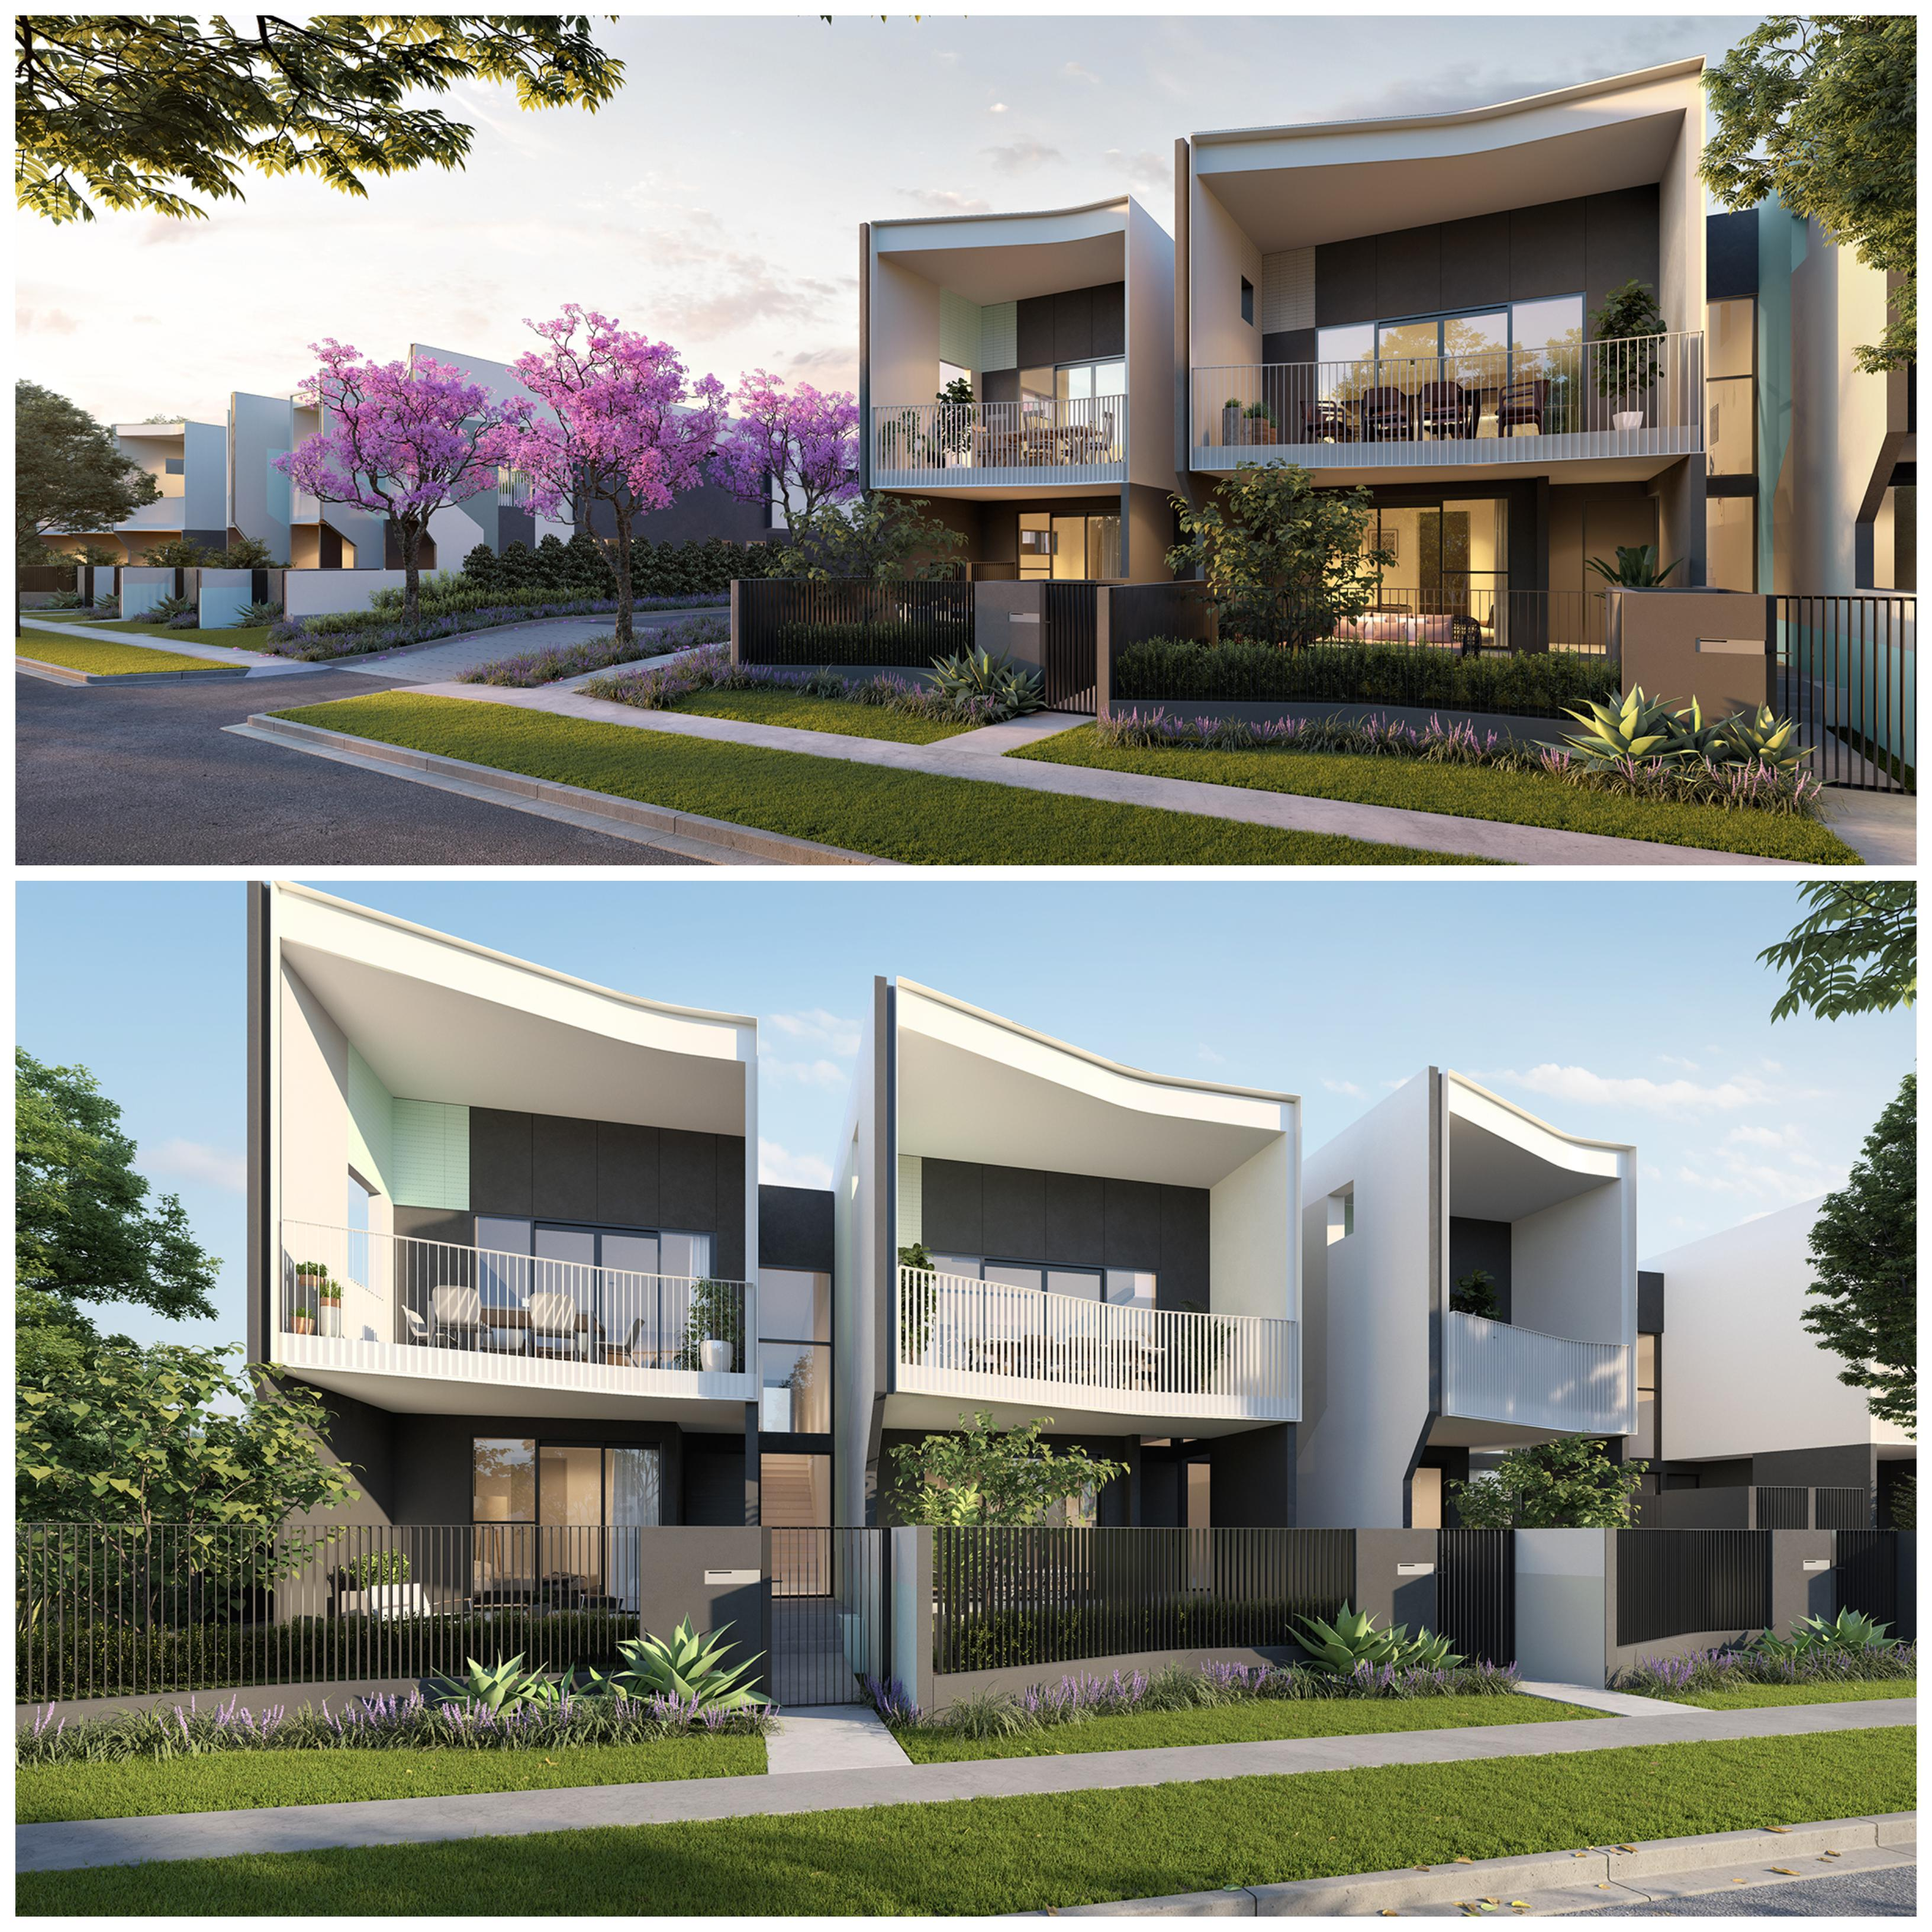 The development will feature three and four bedroom terrace homes and one-to-three bedroom apartments.